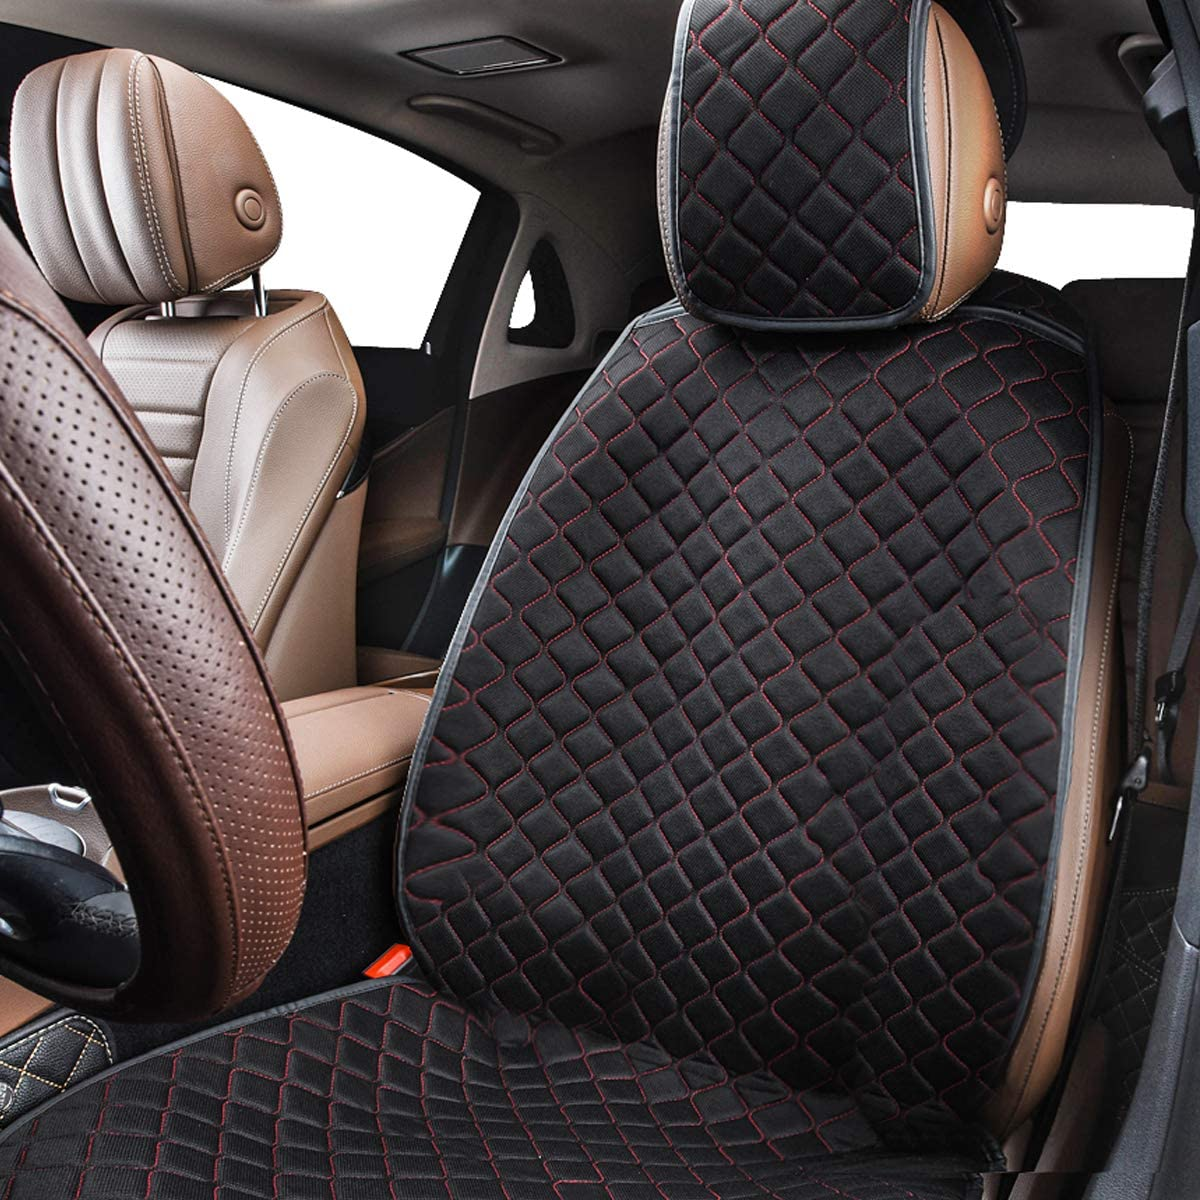 Black with red CAR PASS Universal Four Season Mat Car Seat Cushion Cover 1PC Black with Red for Car Truck SUV